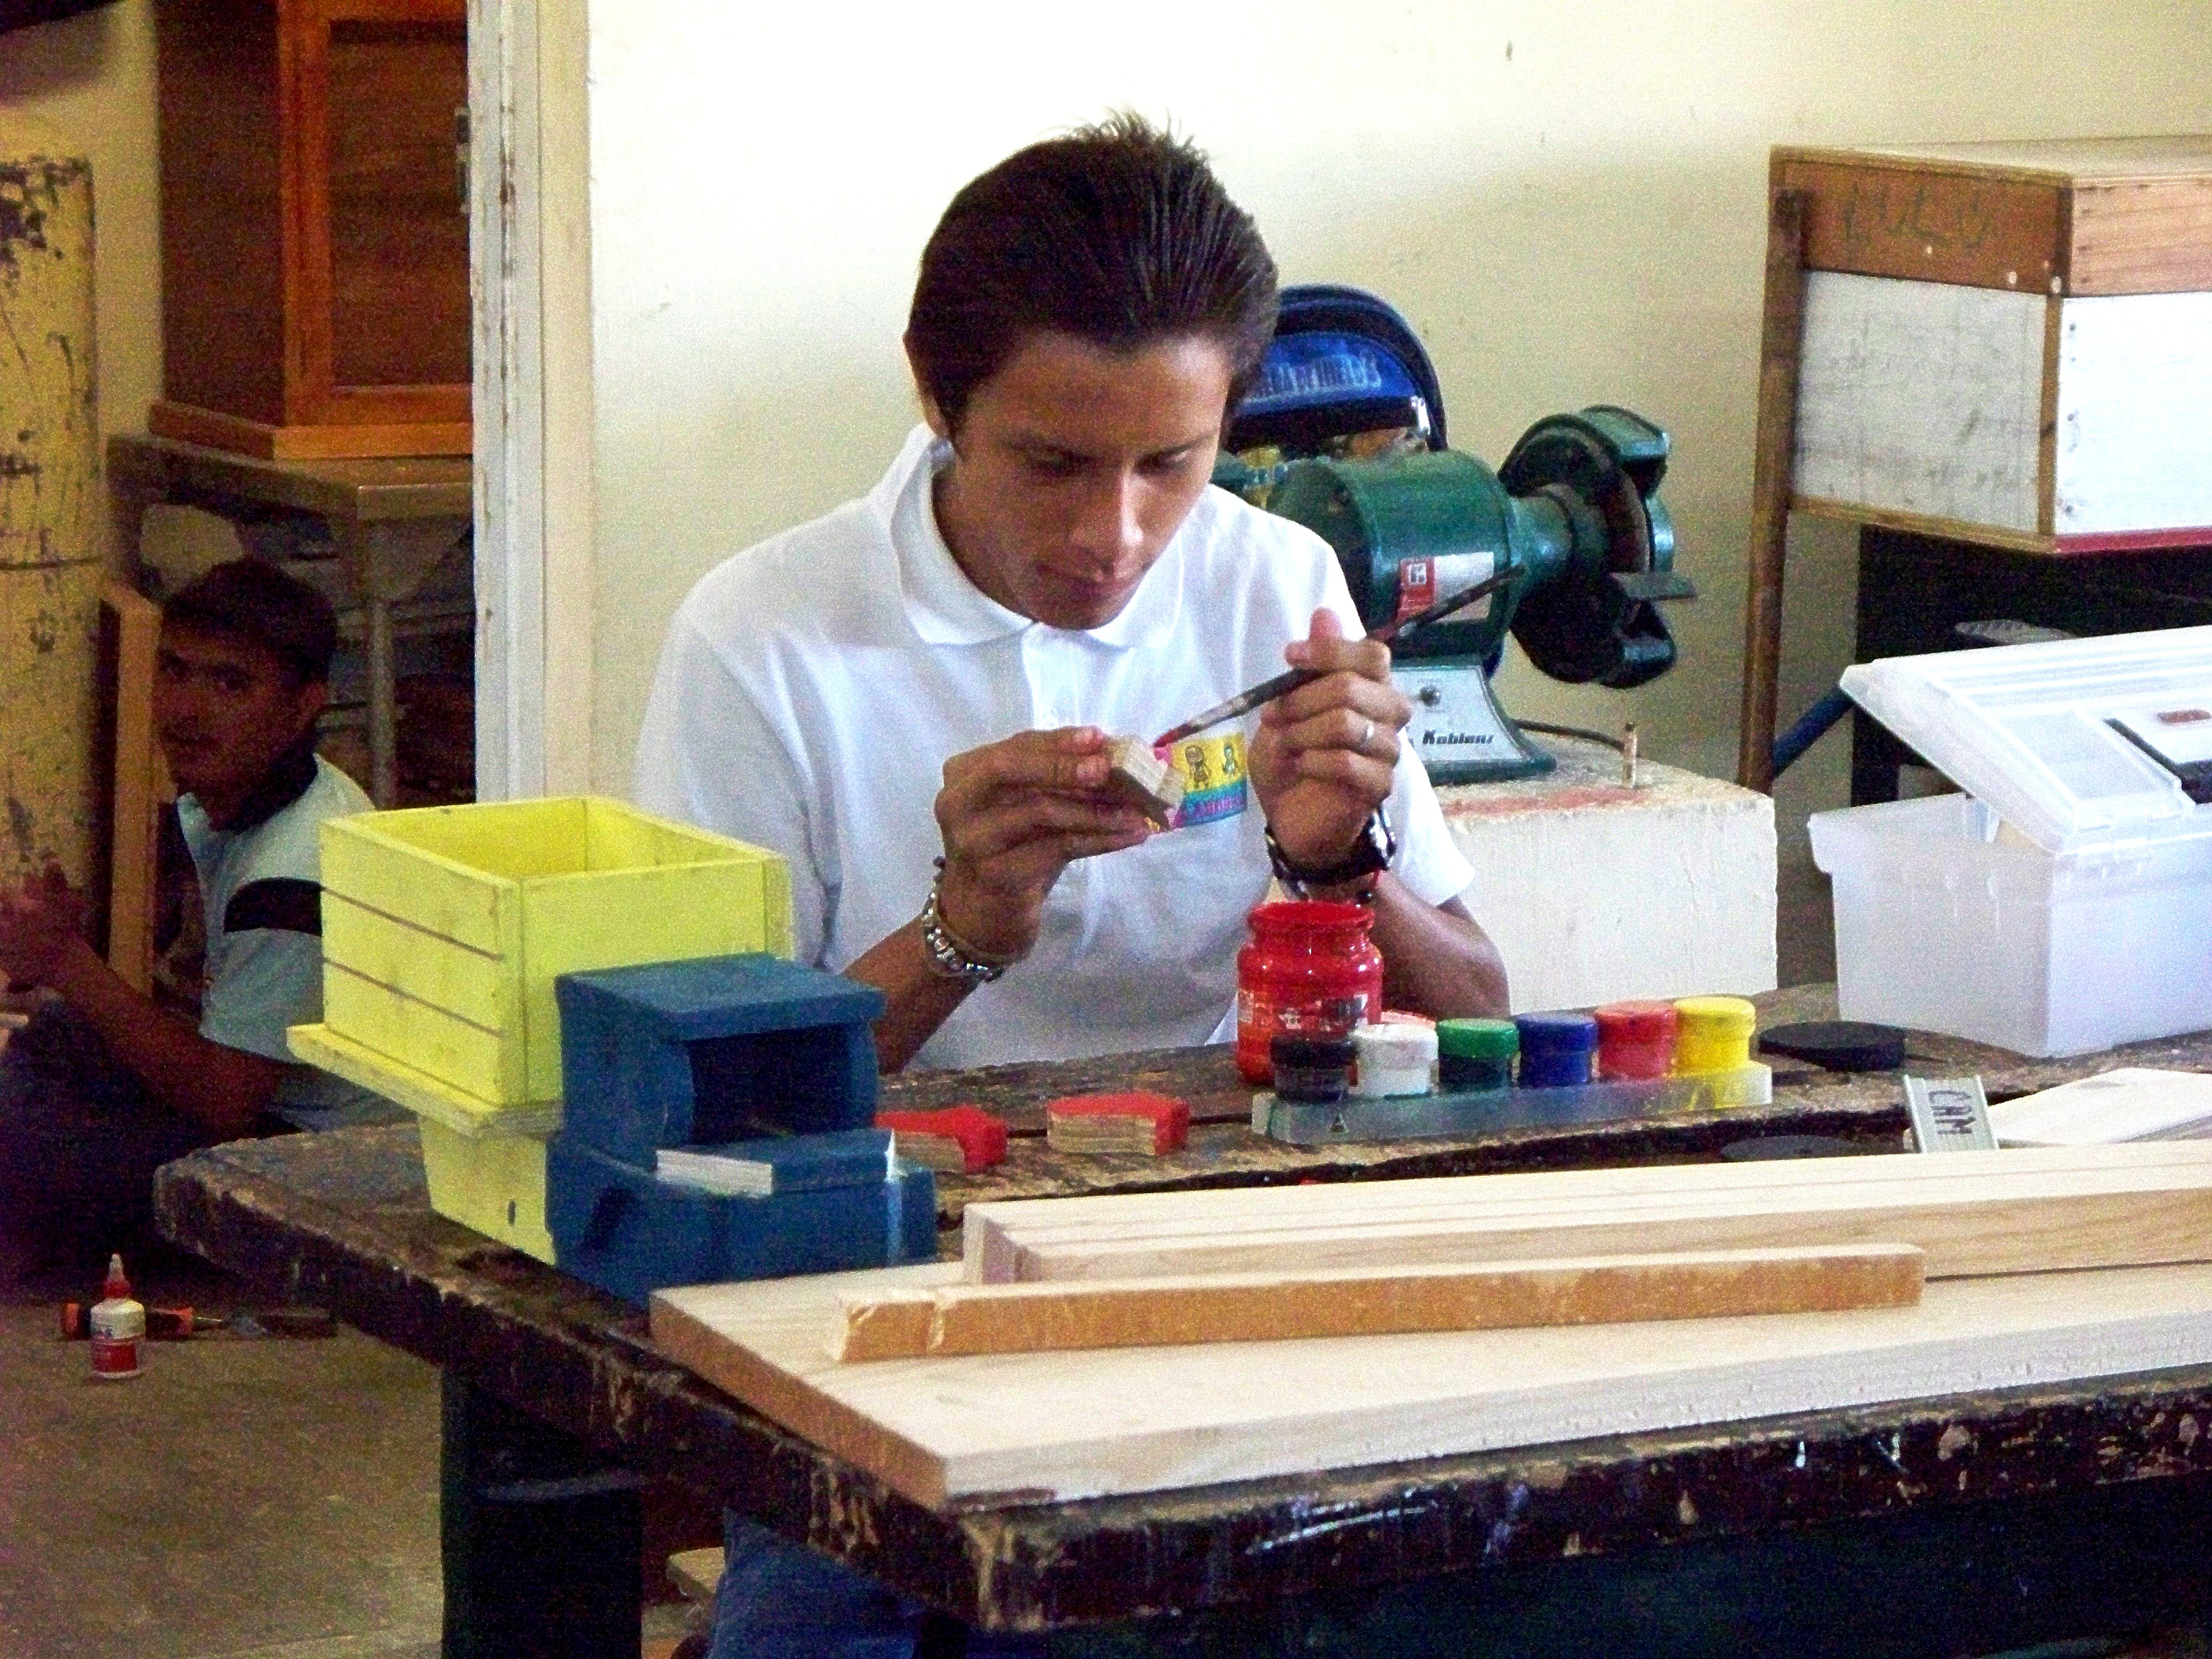 Teens learn carpentry and life skills at CAM